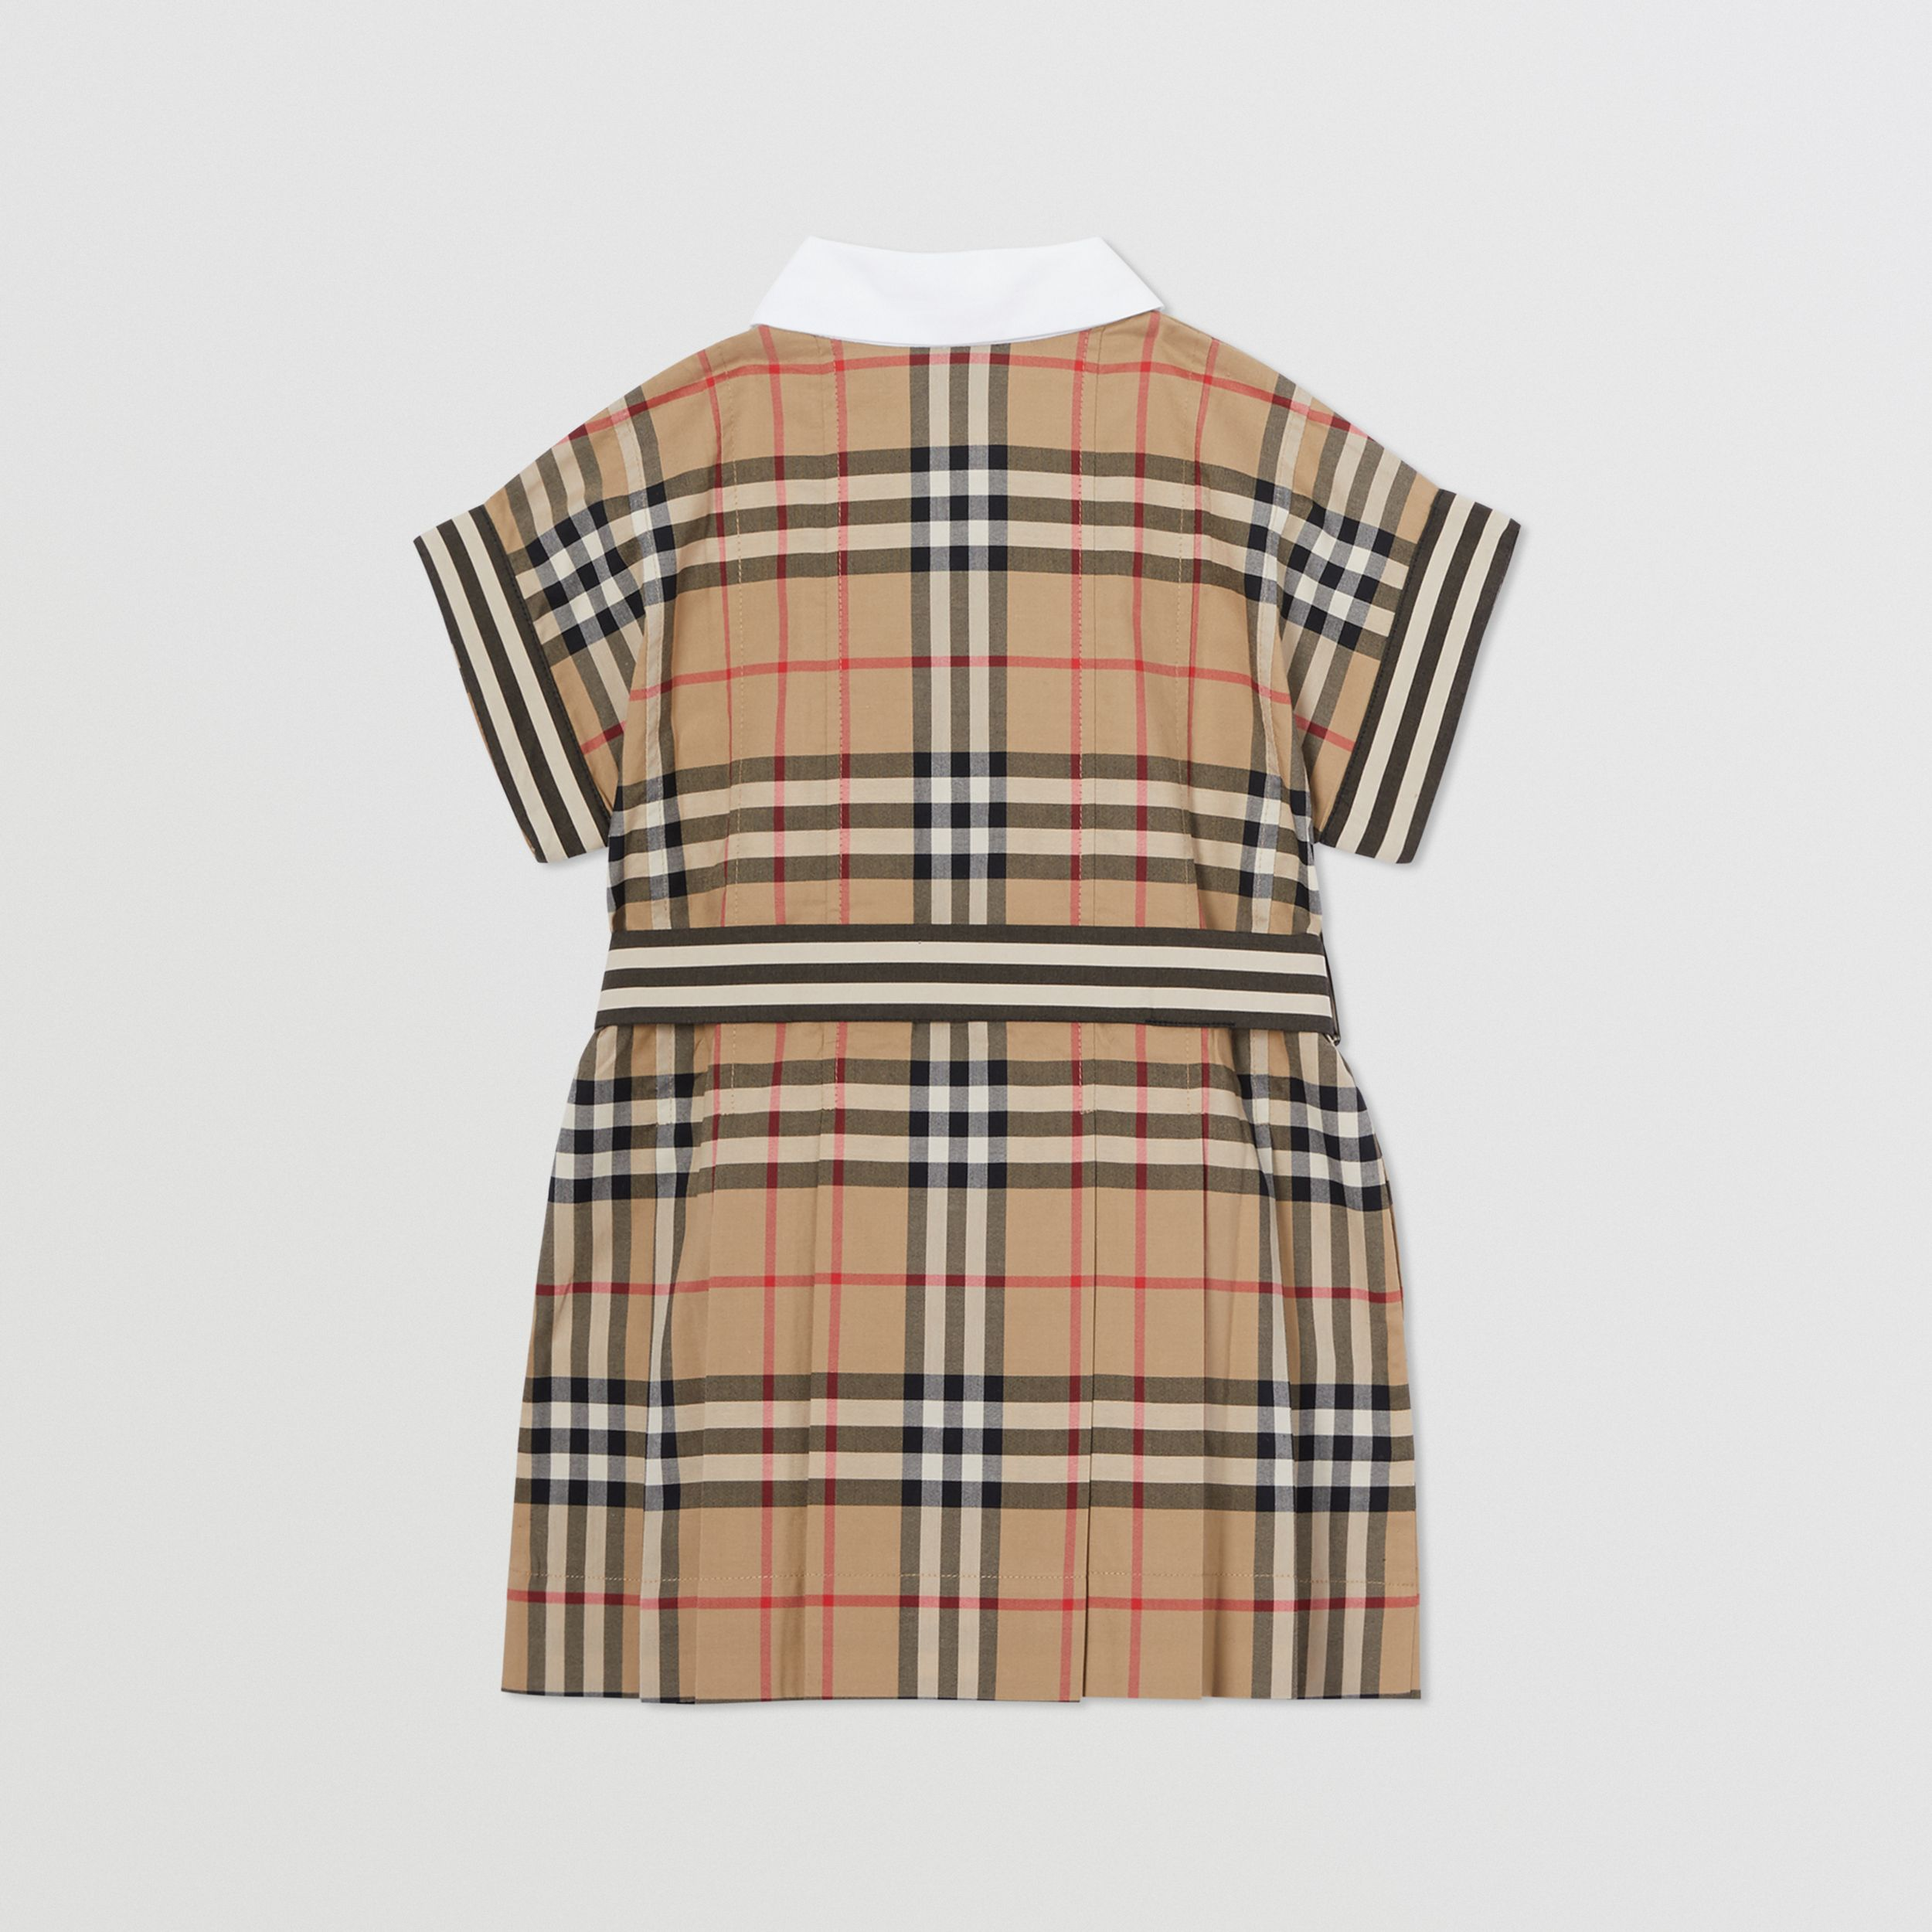 Contrast Collar Vintage Check Cotton Dress in Archive Beige - Children | Burberry - 4